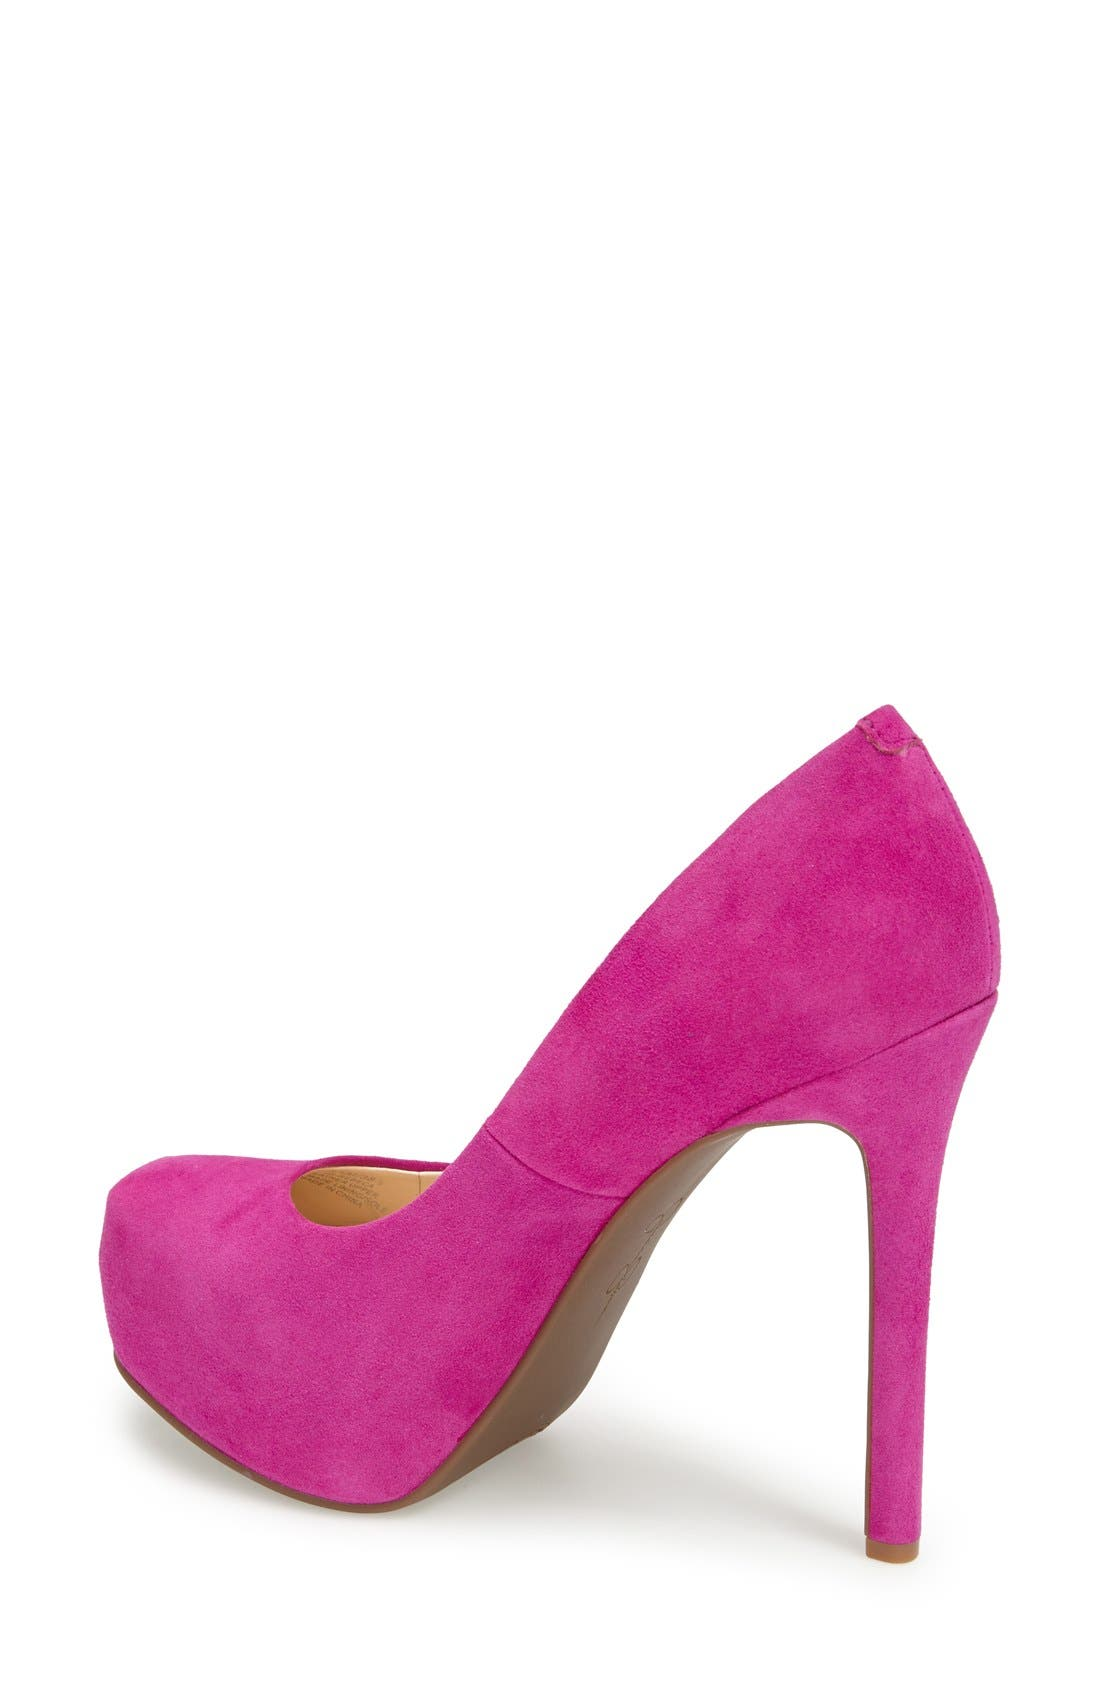 'Rebeca' Platform Pump,                             Alternate thumbnail 2, color,                             Spring Magenta